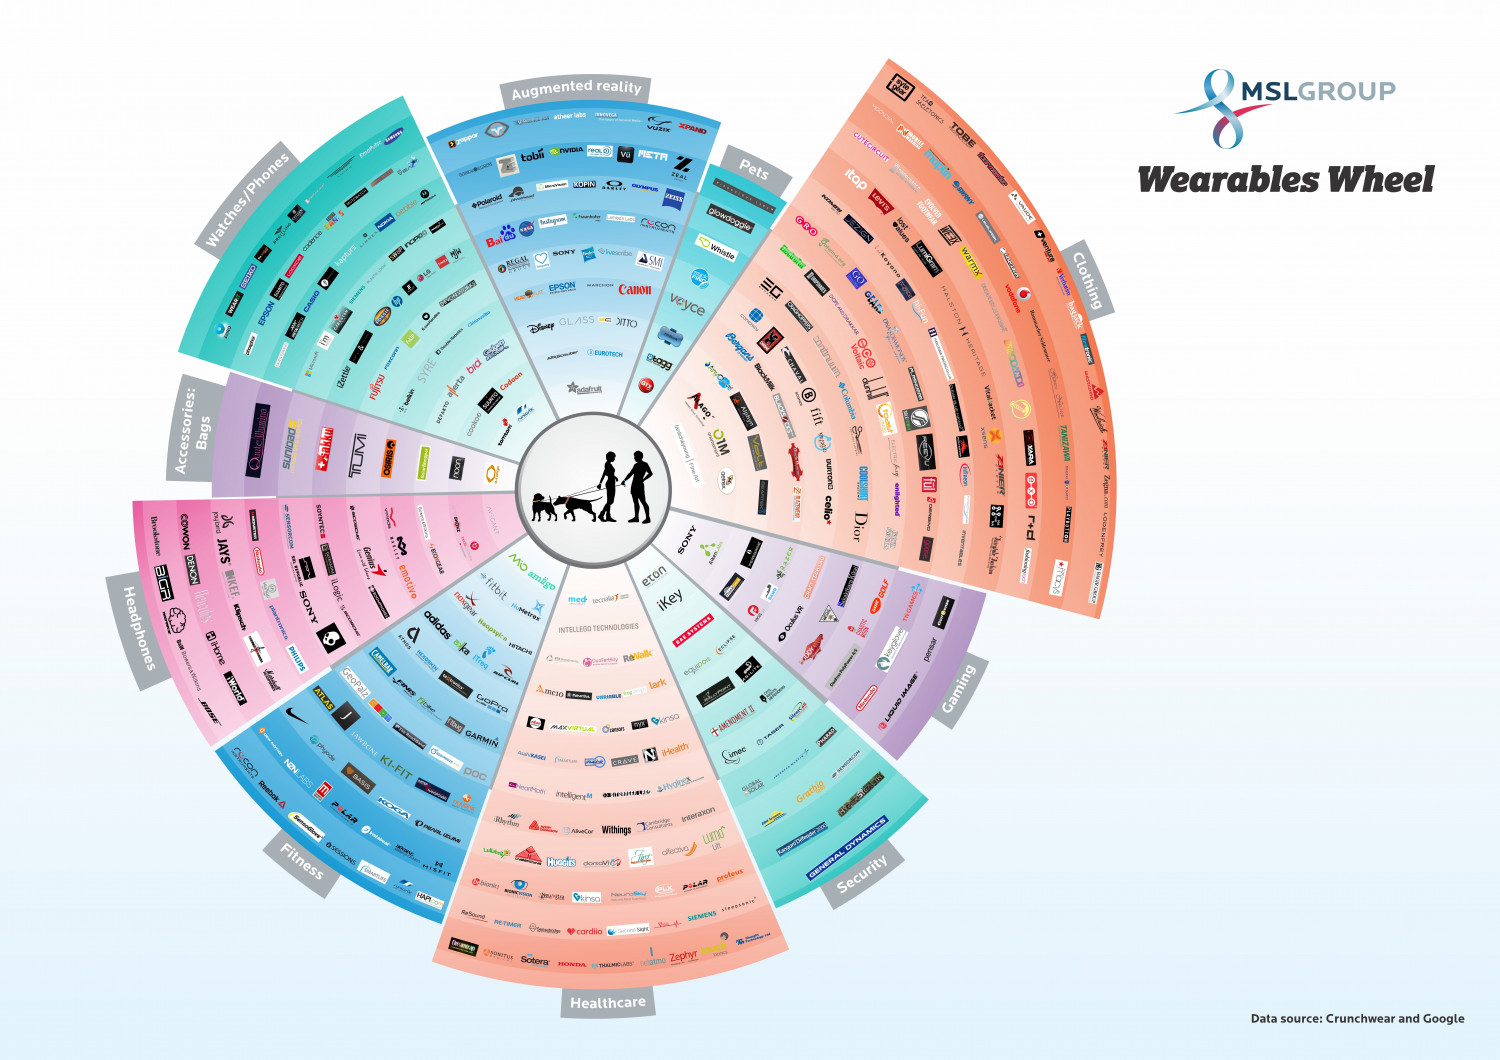 The Wearable Wheel Infographic